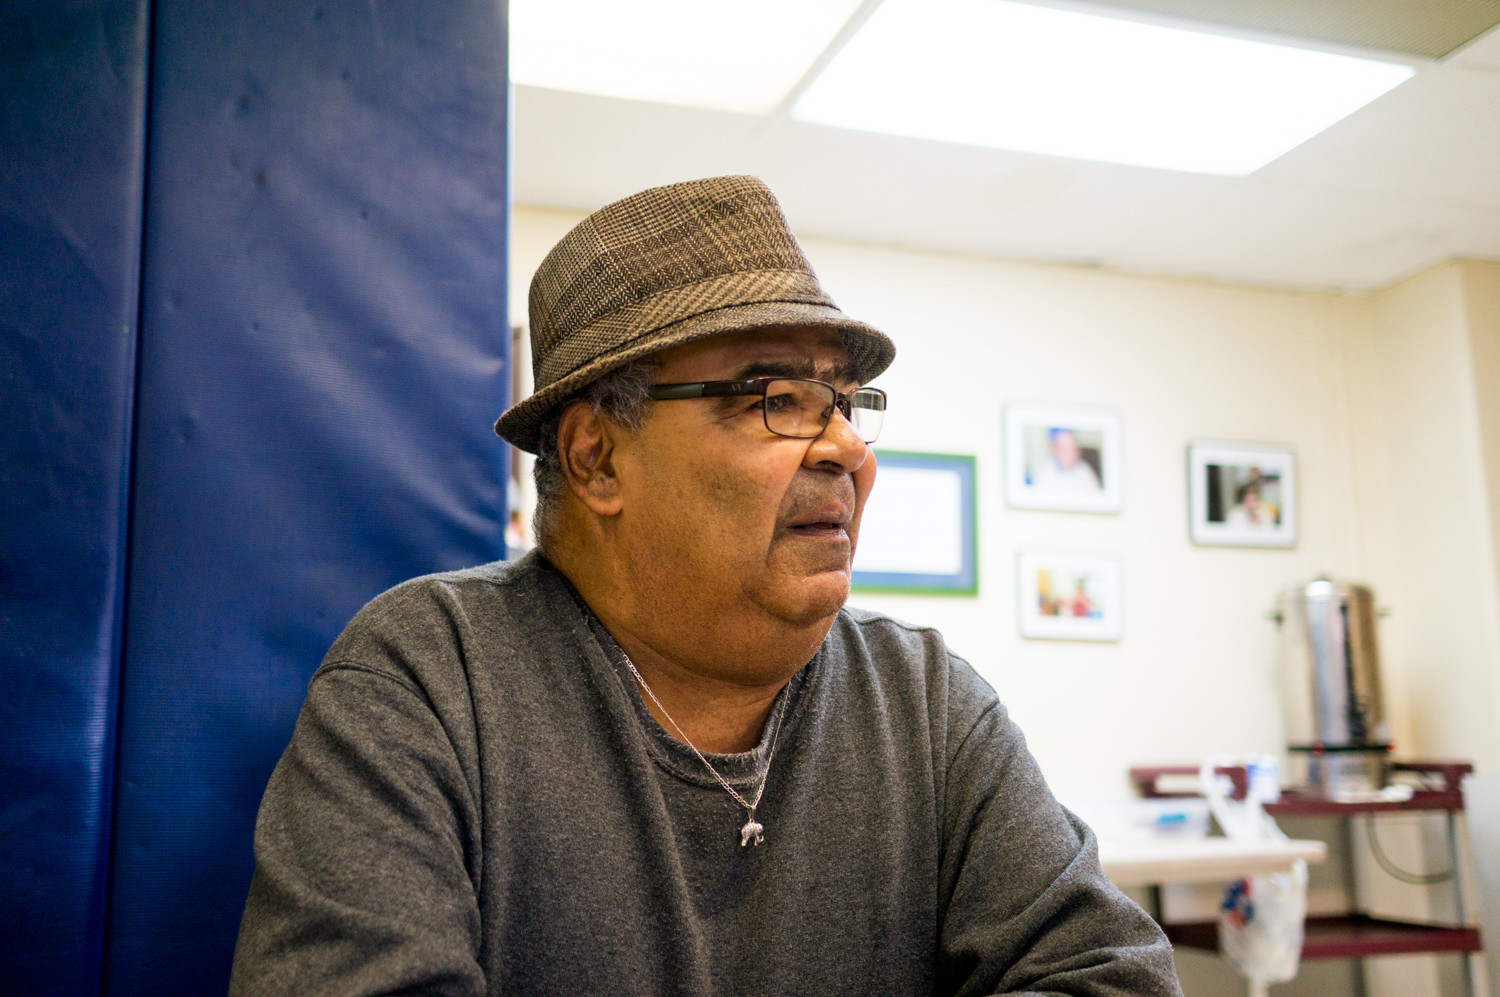 Luis Rivera, a resident of New York City Housing Authority's Marble Hill housing development, has been happy living there, with no complaints about the buildings or management.